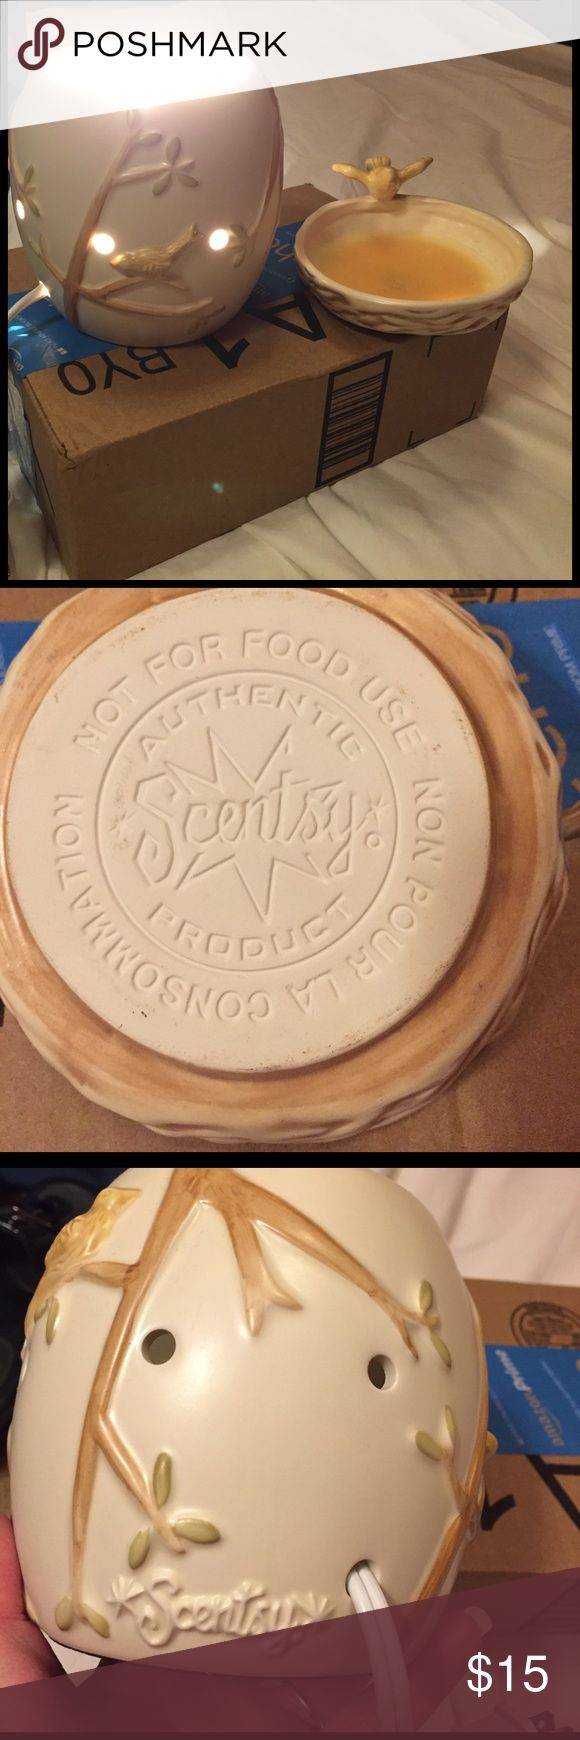 """Scentsy brand wax warmer w/on/off switch & wax Scentsy brand wax warmer (has wax in it), but only used a short time. Has on/off switch & takes a night light bulb. Bulb is not included, as I don't have one to replace it. I used a larger bulb to show it does work. Includes 2 wax melts. They are labeled as very sexy heavenly scent. They have a flowery smell, but they do smell wonderful. Wax melts are not scentsy brand. I have another warmer that I use, I don't need this one. 6"""" tall & 5"""" wide…"""